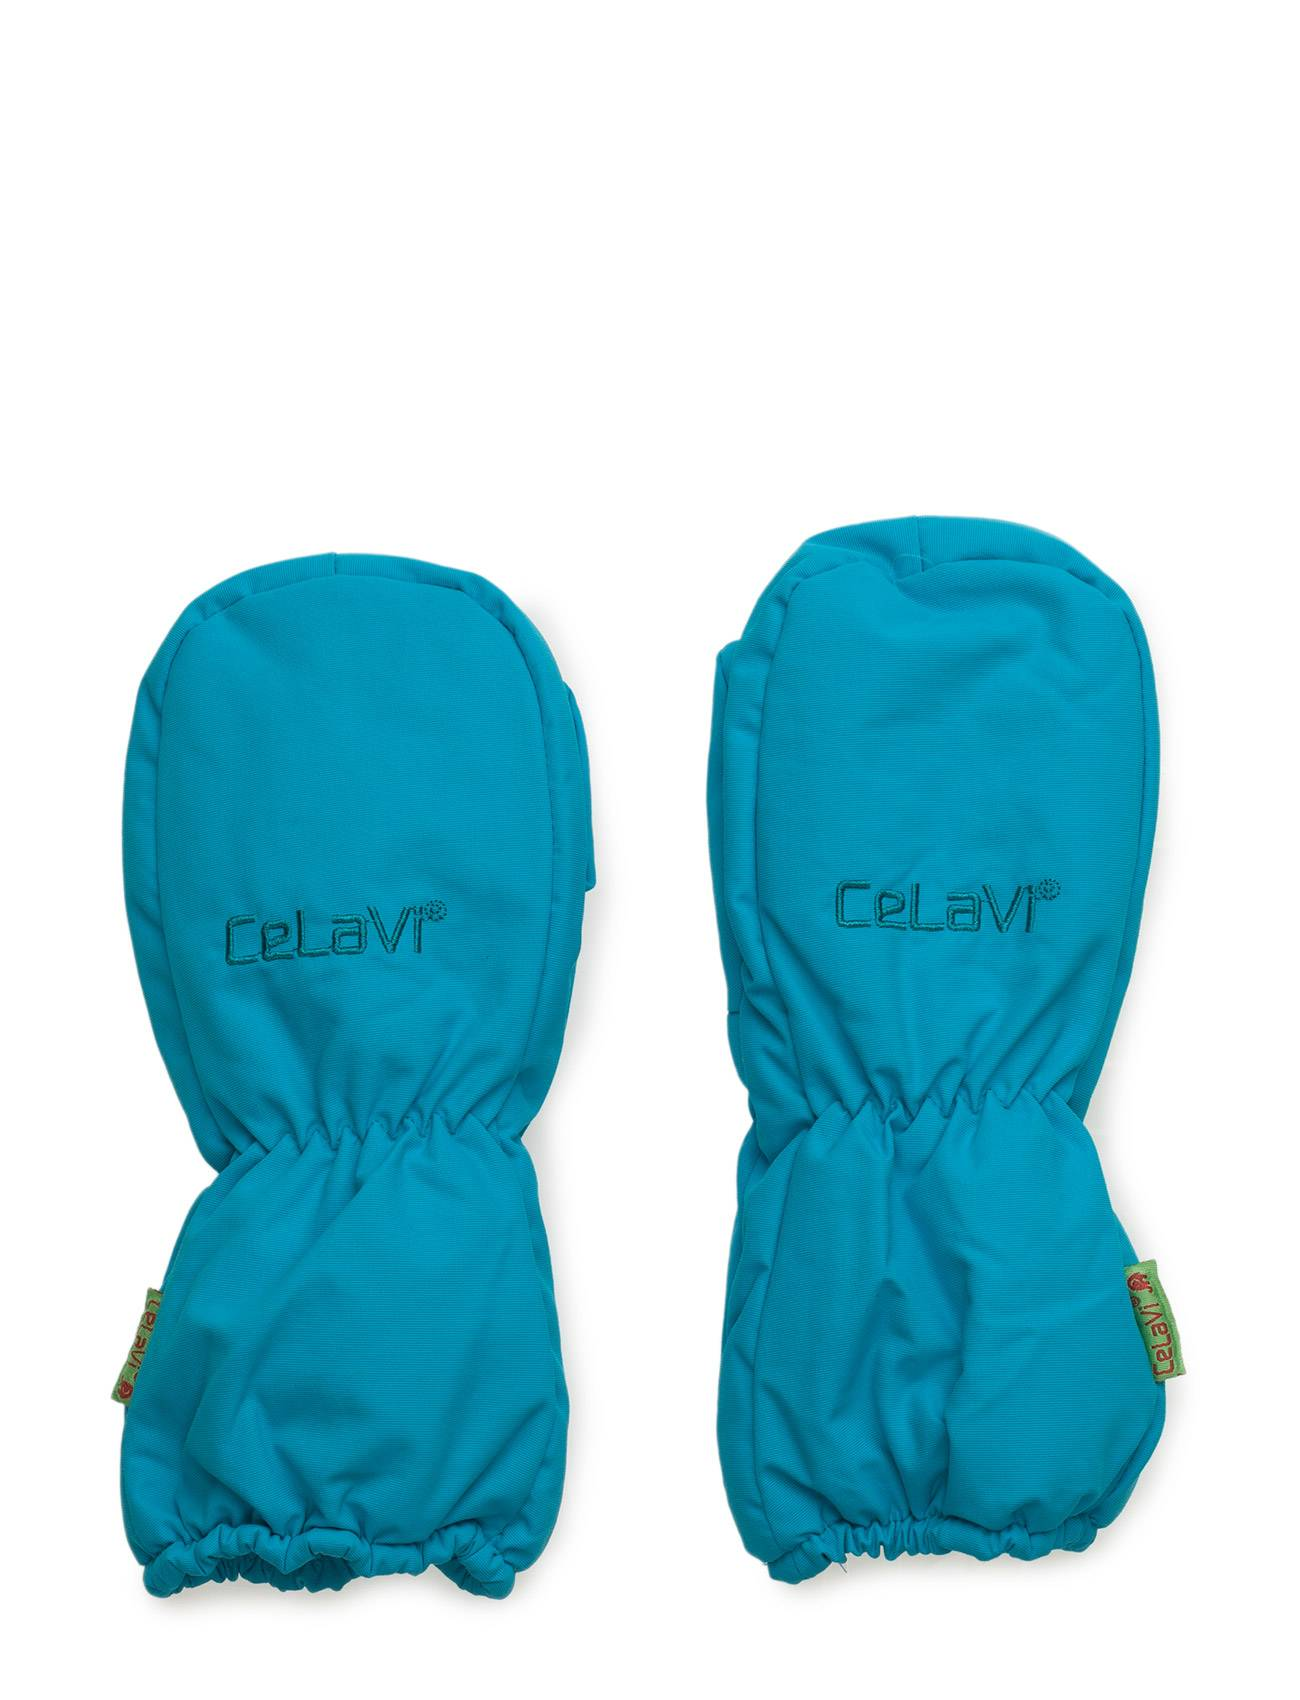 CeLaVi Padded Mittens -Solid